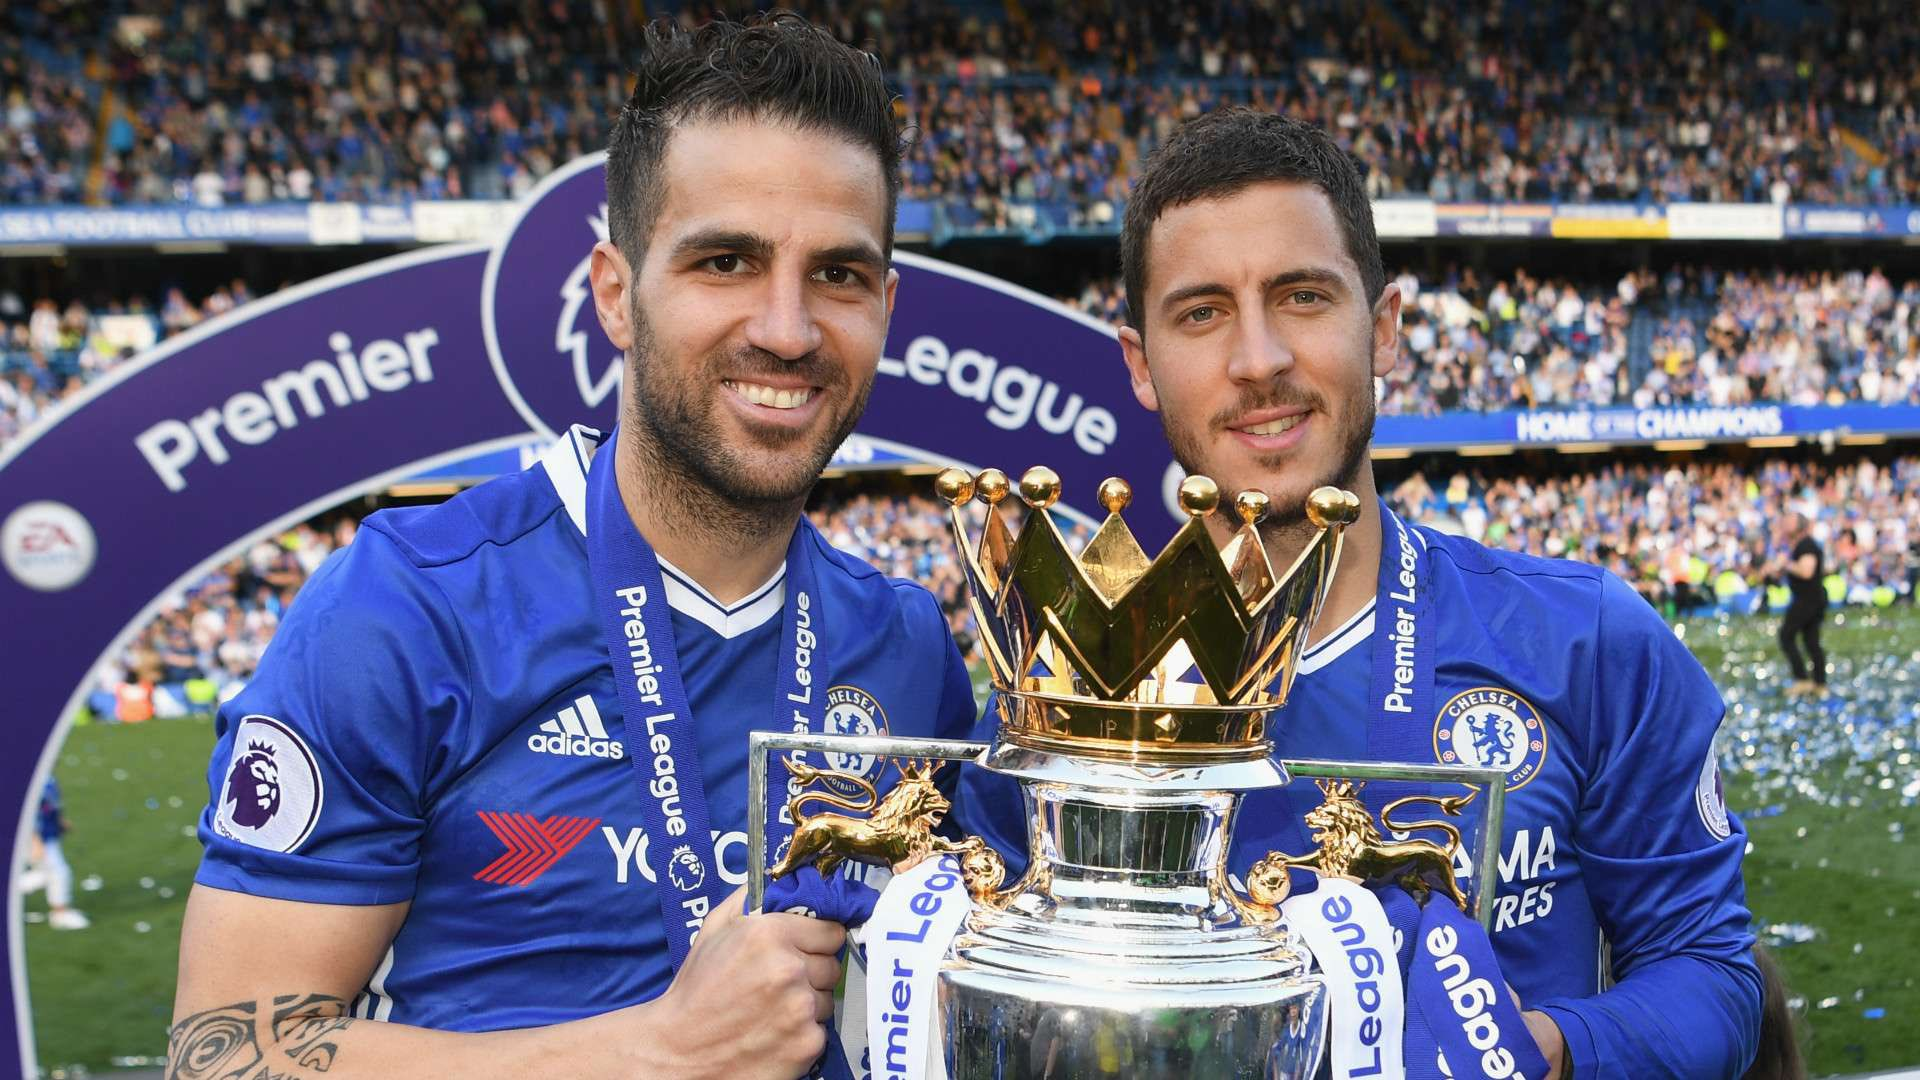 Happy birthday to for me top 3 Premier League midfielders of all time. Cesc Fàbregas.